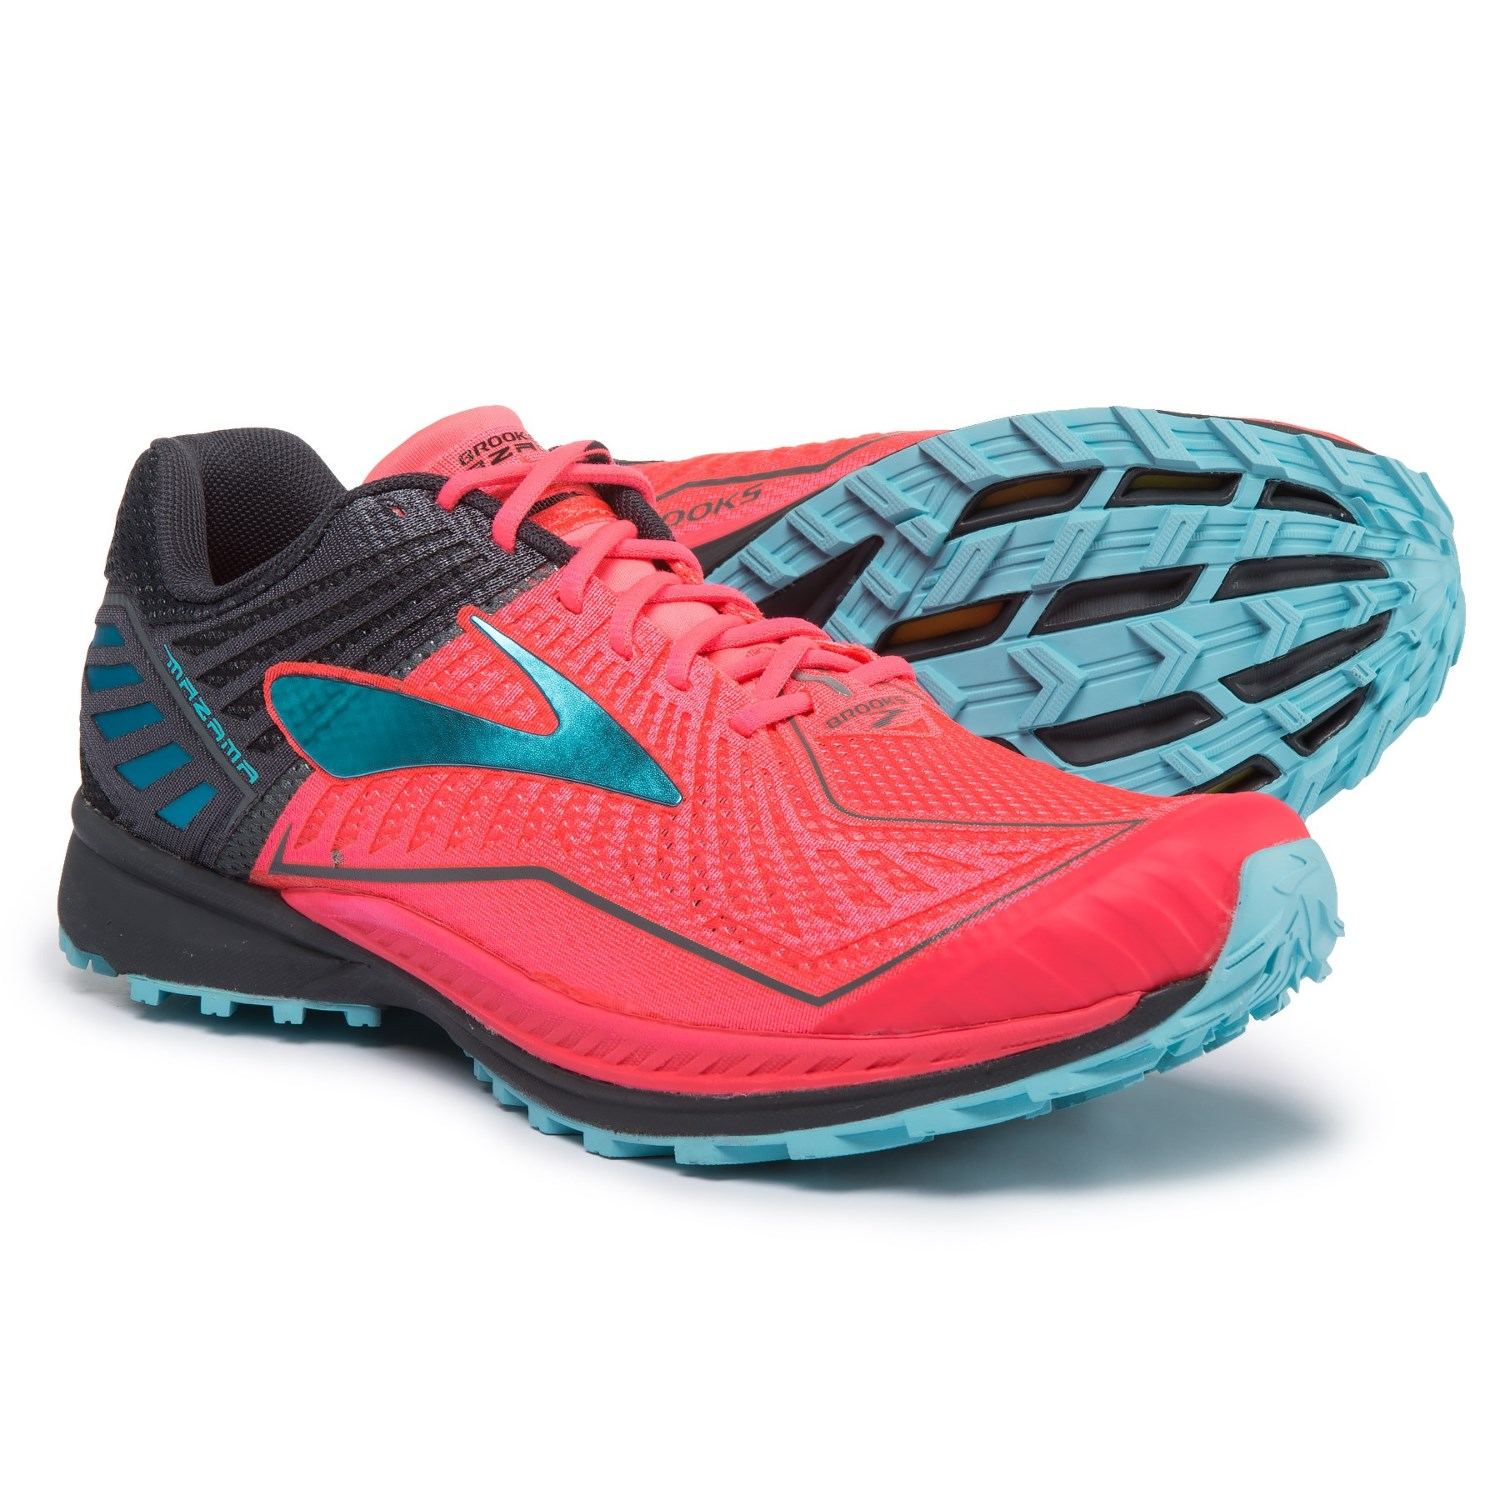 Brooks Mazama Trail Running Shoes (For Women) in Diva Pink Anthracite Blue 75cab2cb359